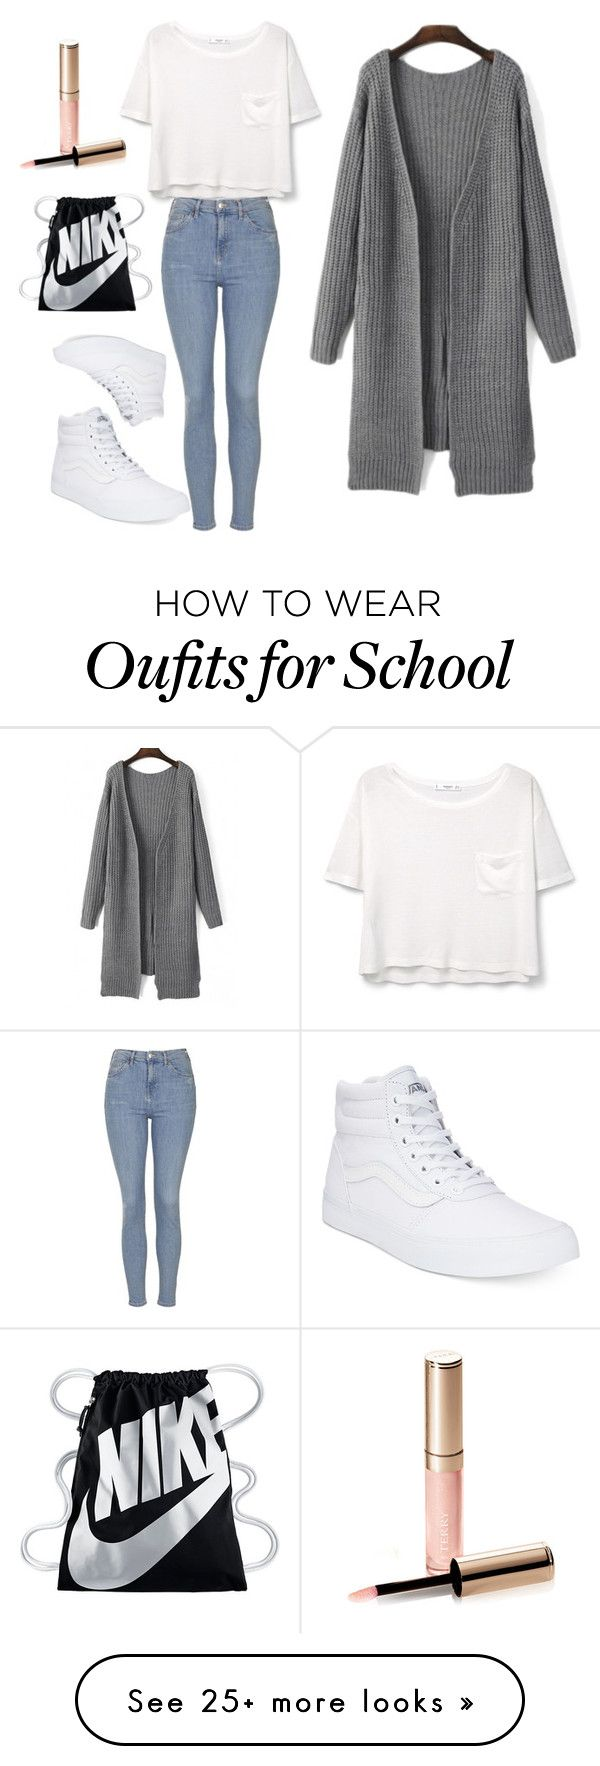 """Normal School Day"" by amyahkelly on Polyvore featuring MANGO, Topshop, Vans, NIKE and By Terry"